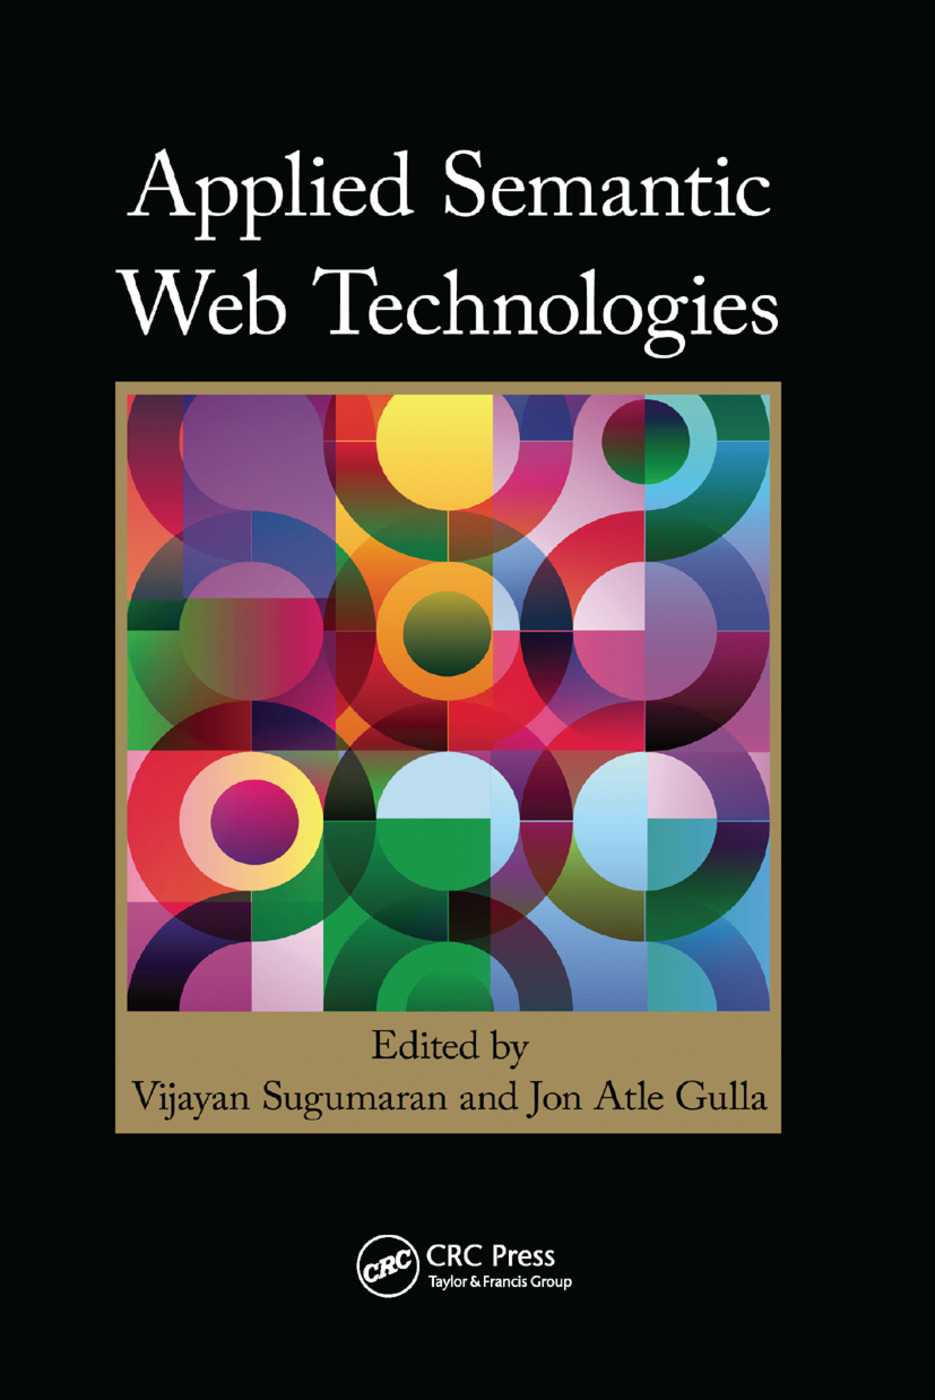 Applied Semantic Web Technologies